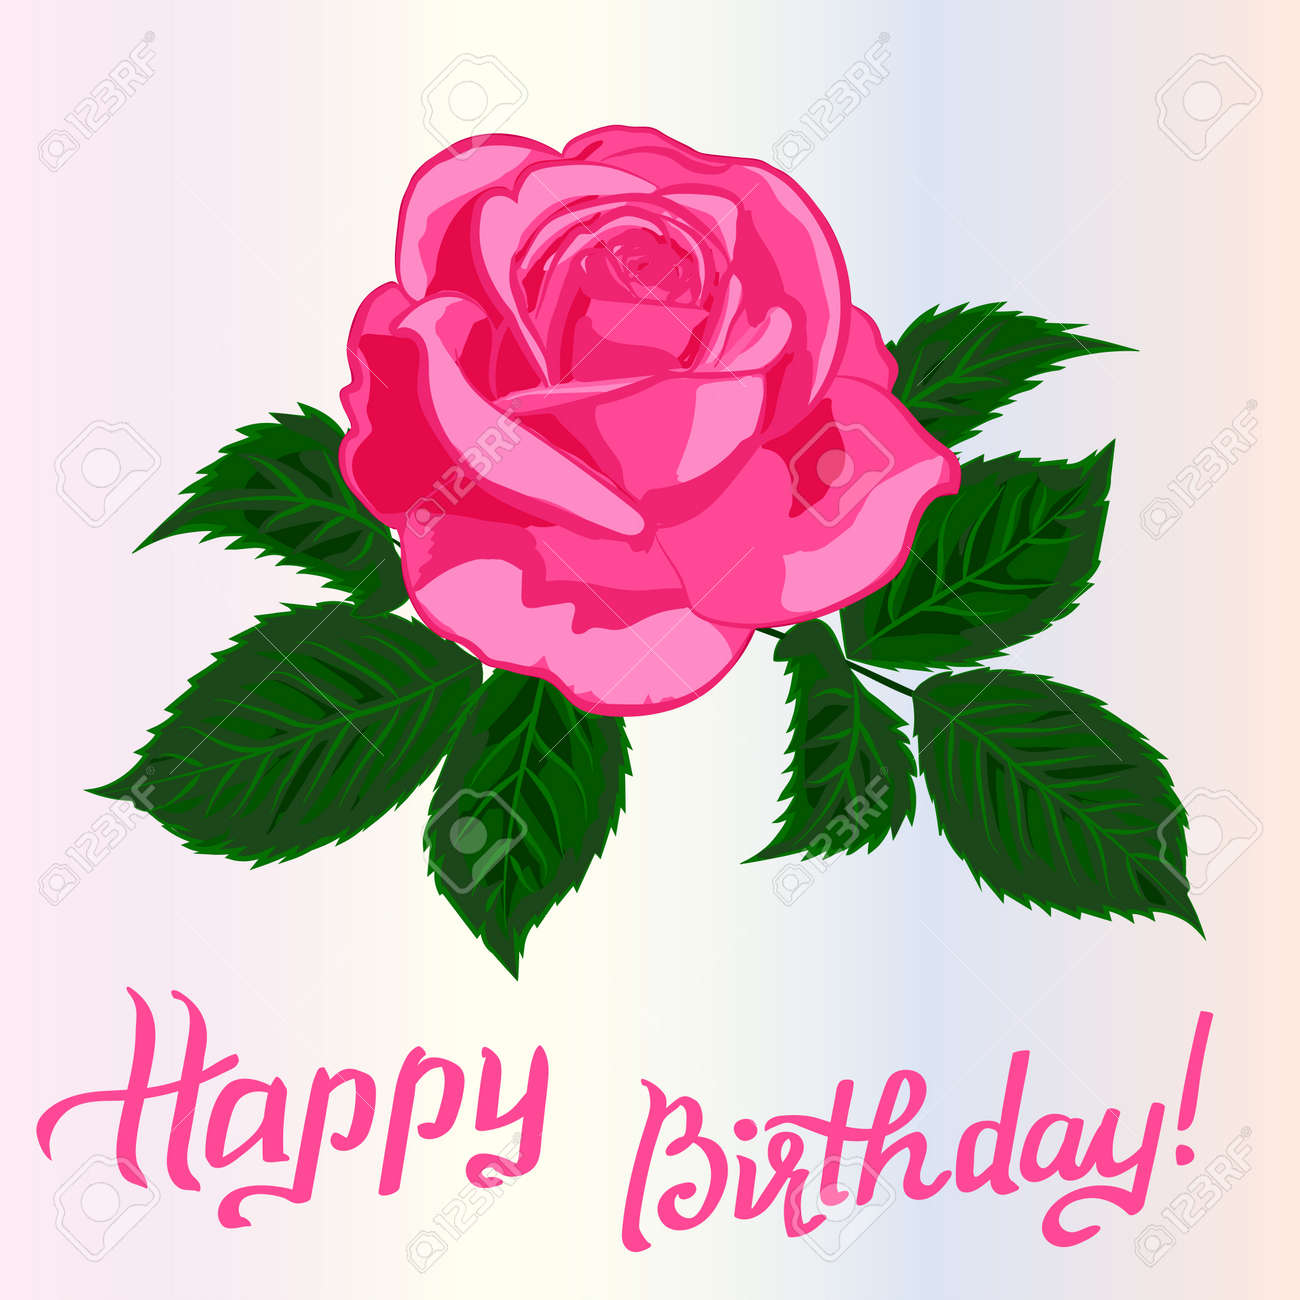 Happy Birthday Lettering And RoseGreeting Card With Fun Vector Illustration Stock